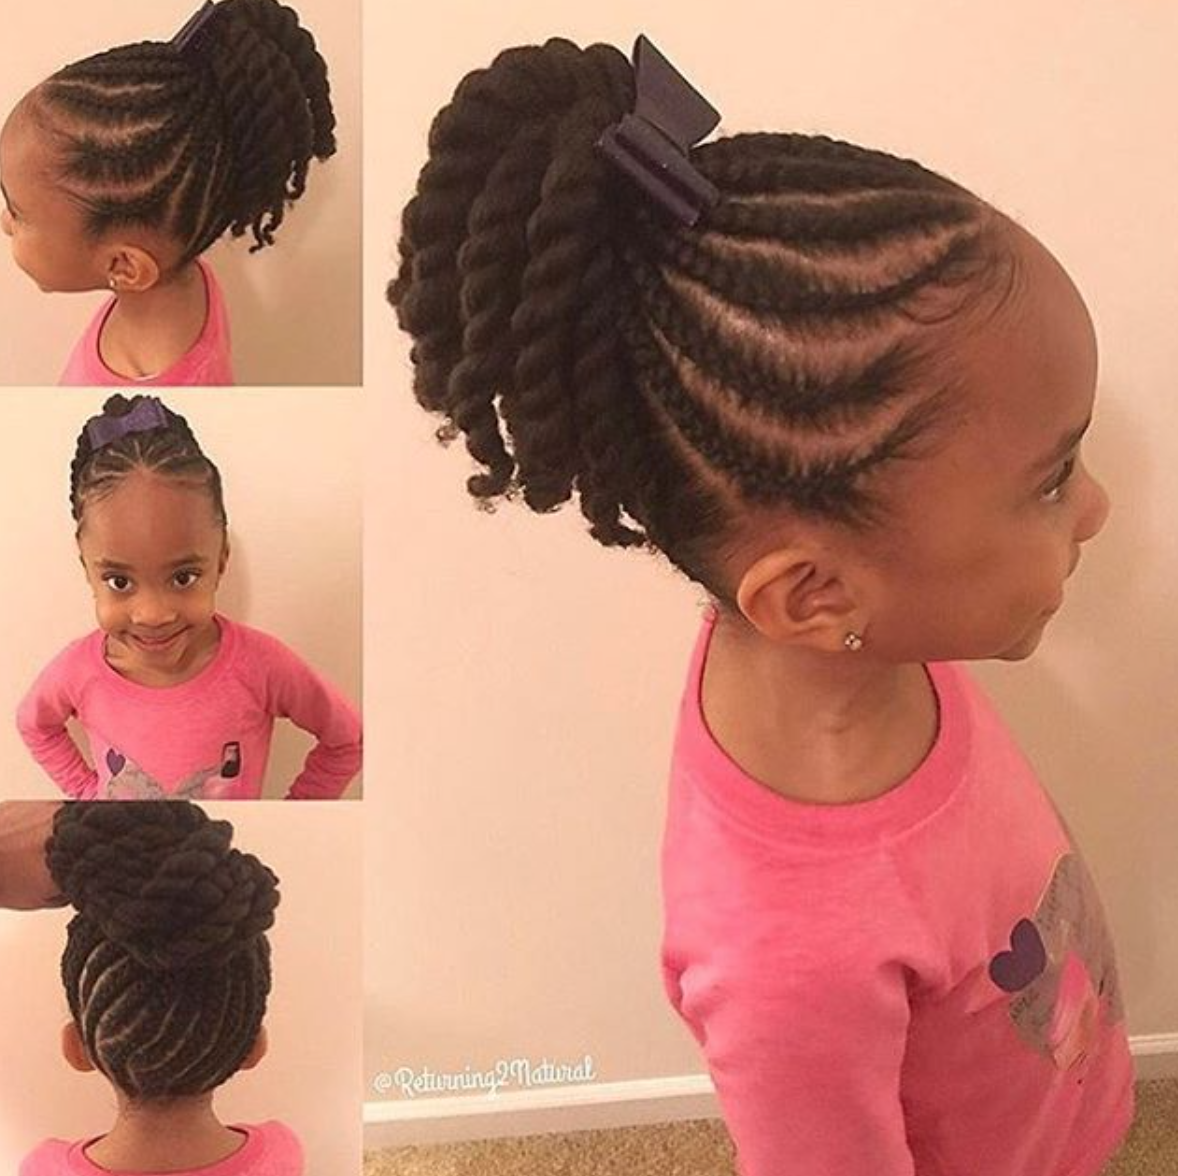 So adorable via @returning2natural - https://blackhairinformation ...